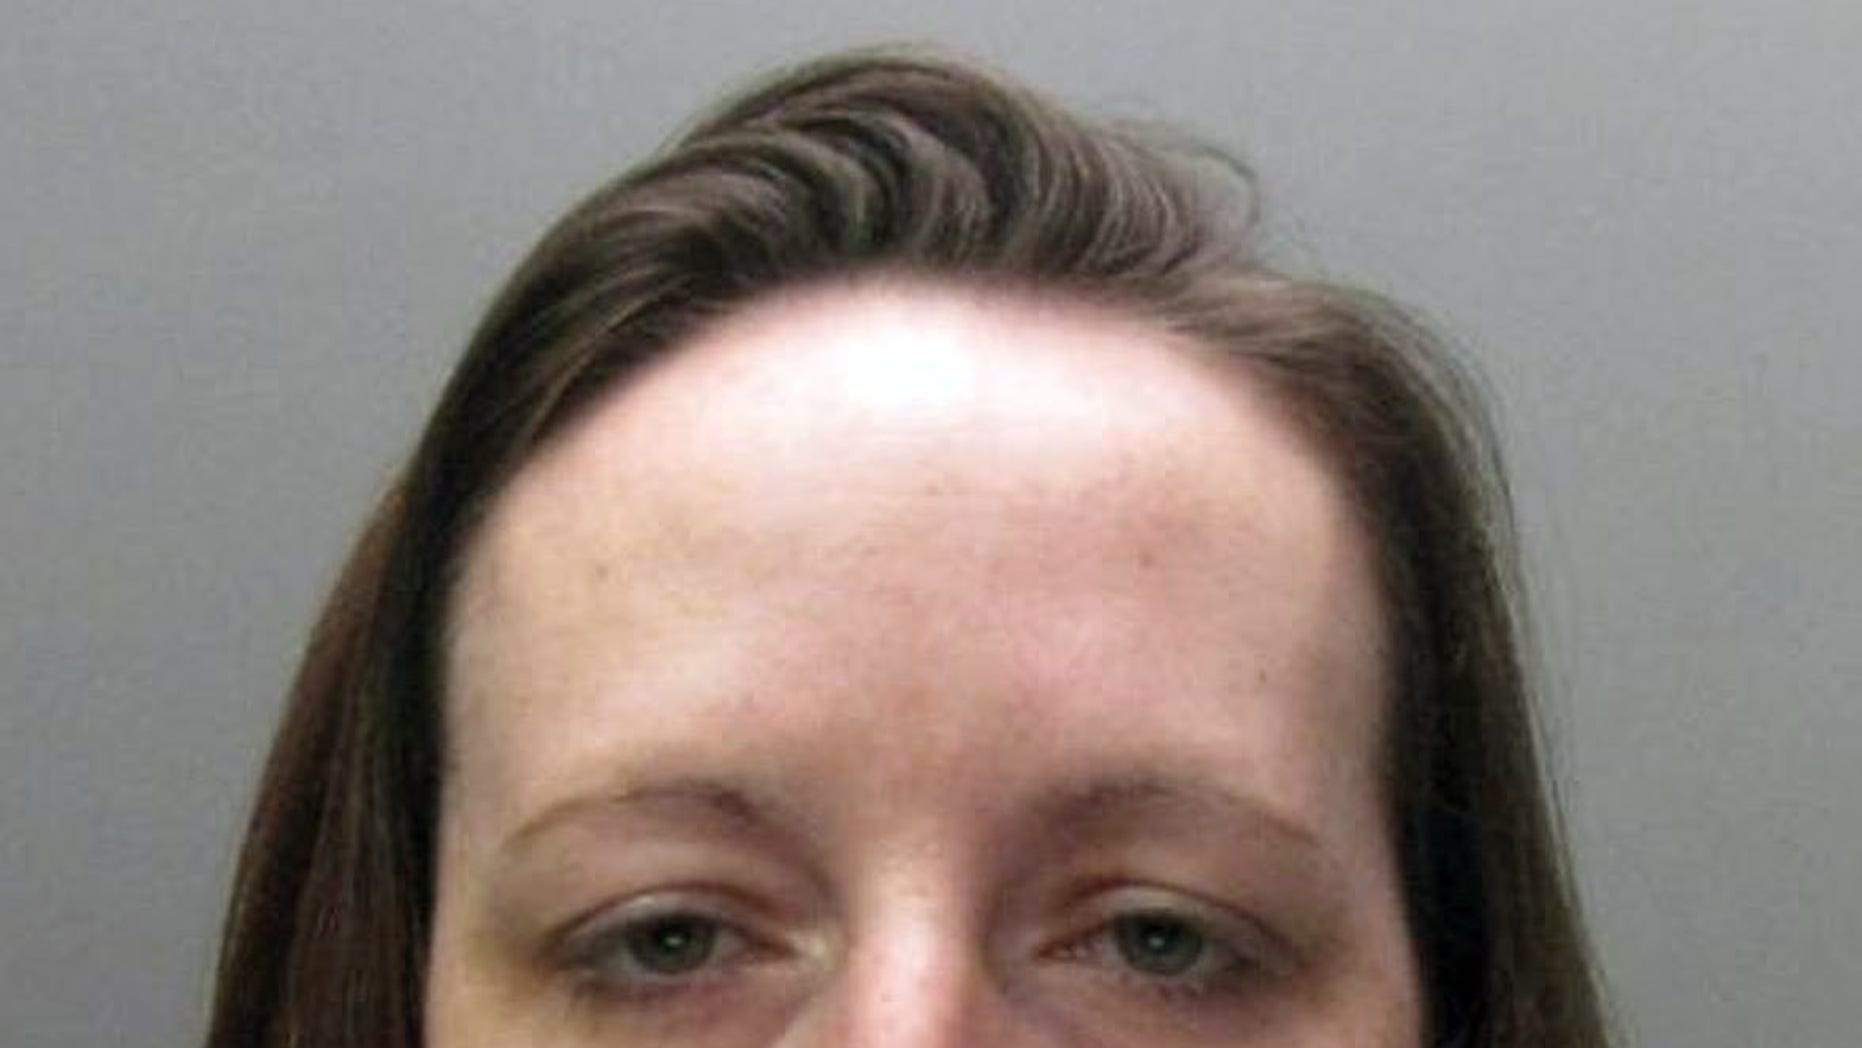 Undated photo of Joanna Dennehy. A British judge told Dennehy -- who killed 3 men and attacked 2 others during a 10-day spree-- that she will never be released from jail. Dennehy smirked as she was sentenced Friday to life with no possibility of parole. (Cambridgeshire Police)